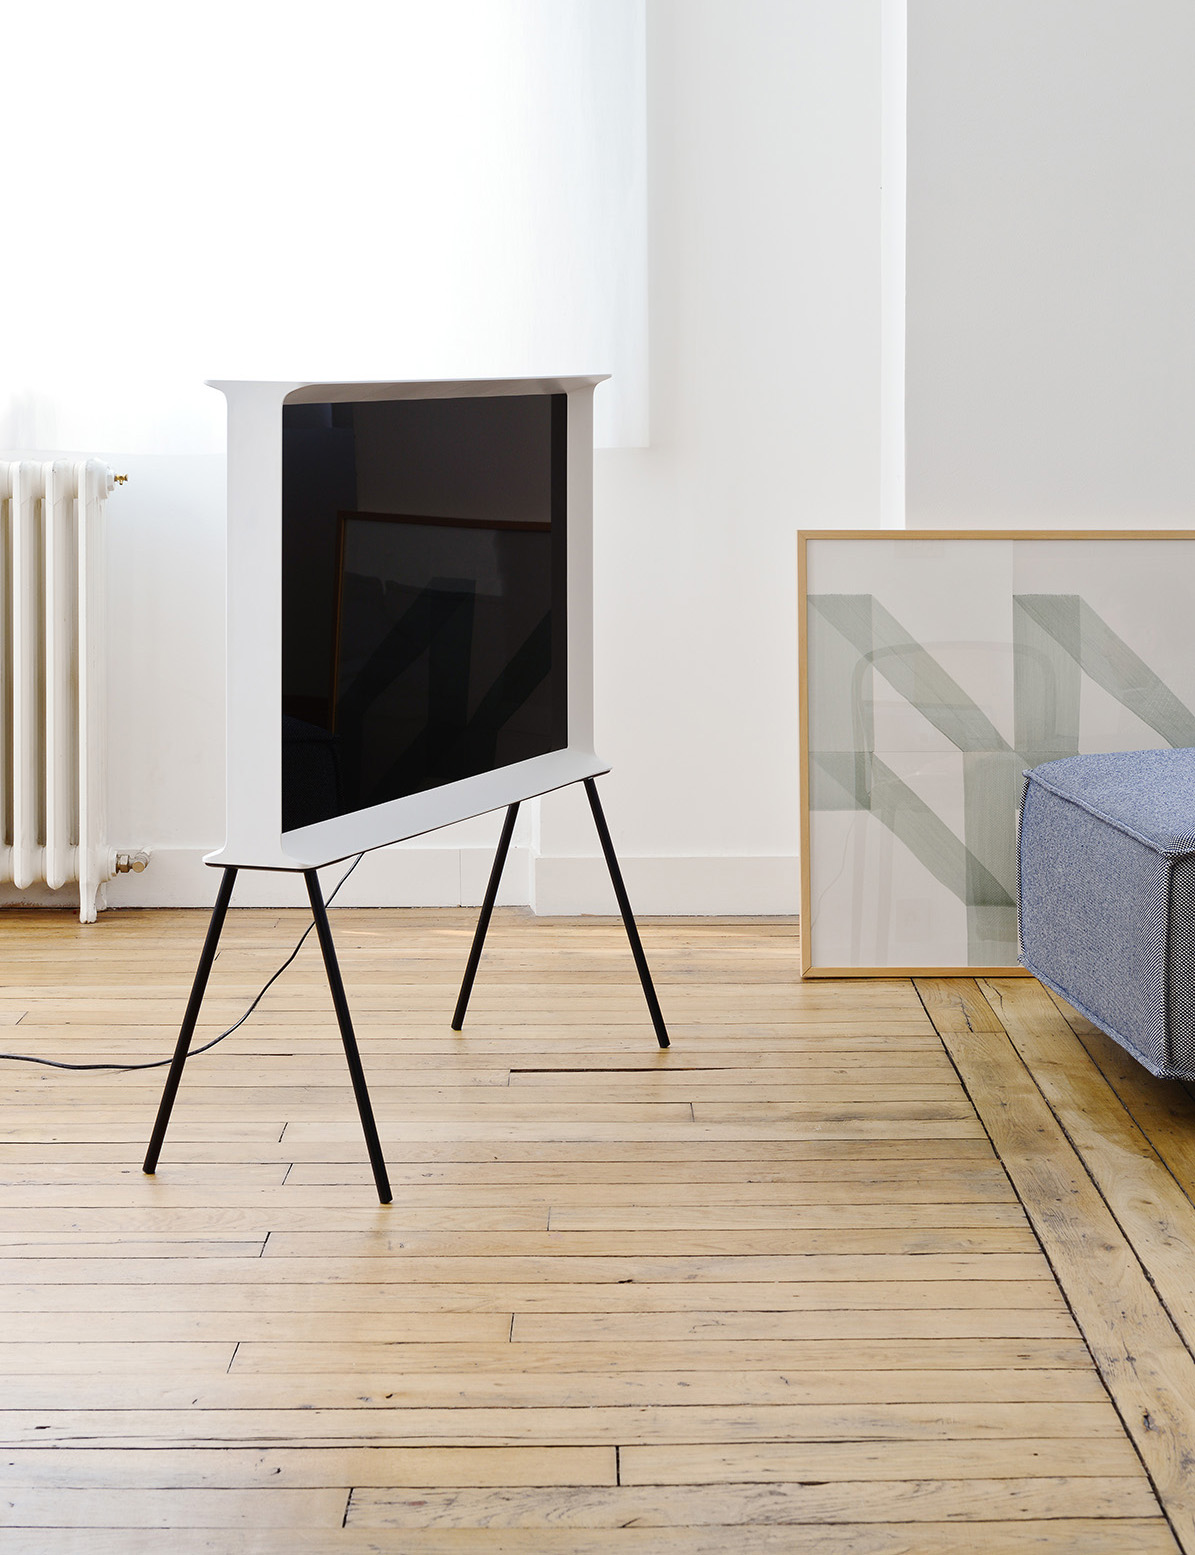 ronan erwan bouroullec 39 s samsung serif tv design milk. Black Bedroom Furniture Sets. Home Design Ideas